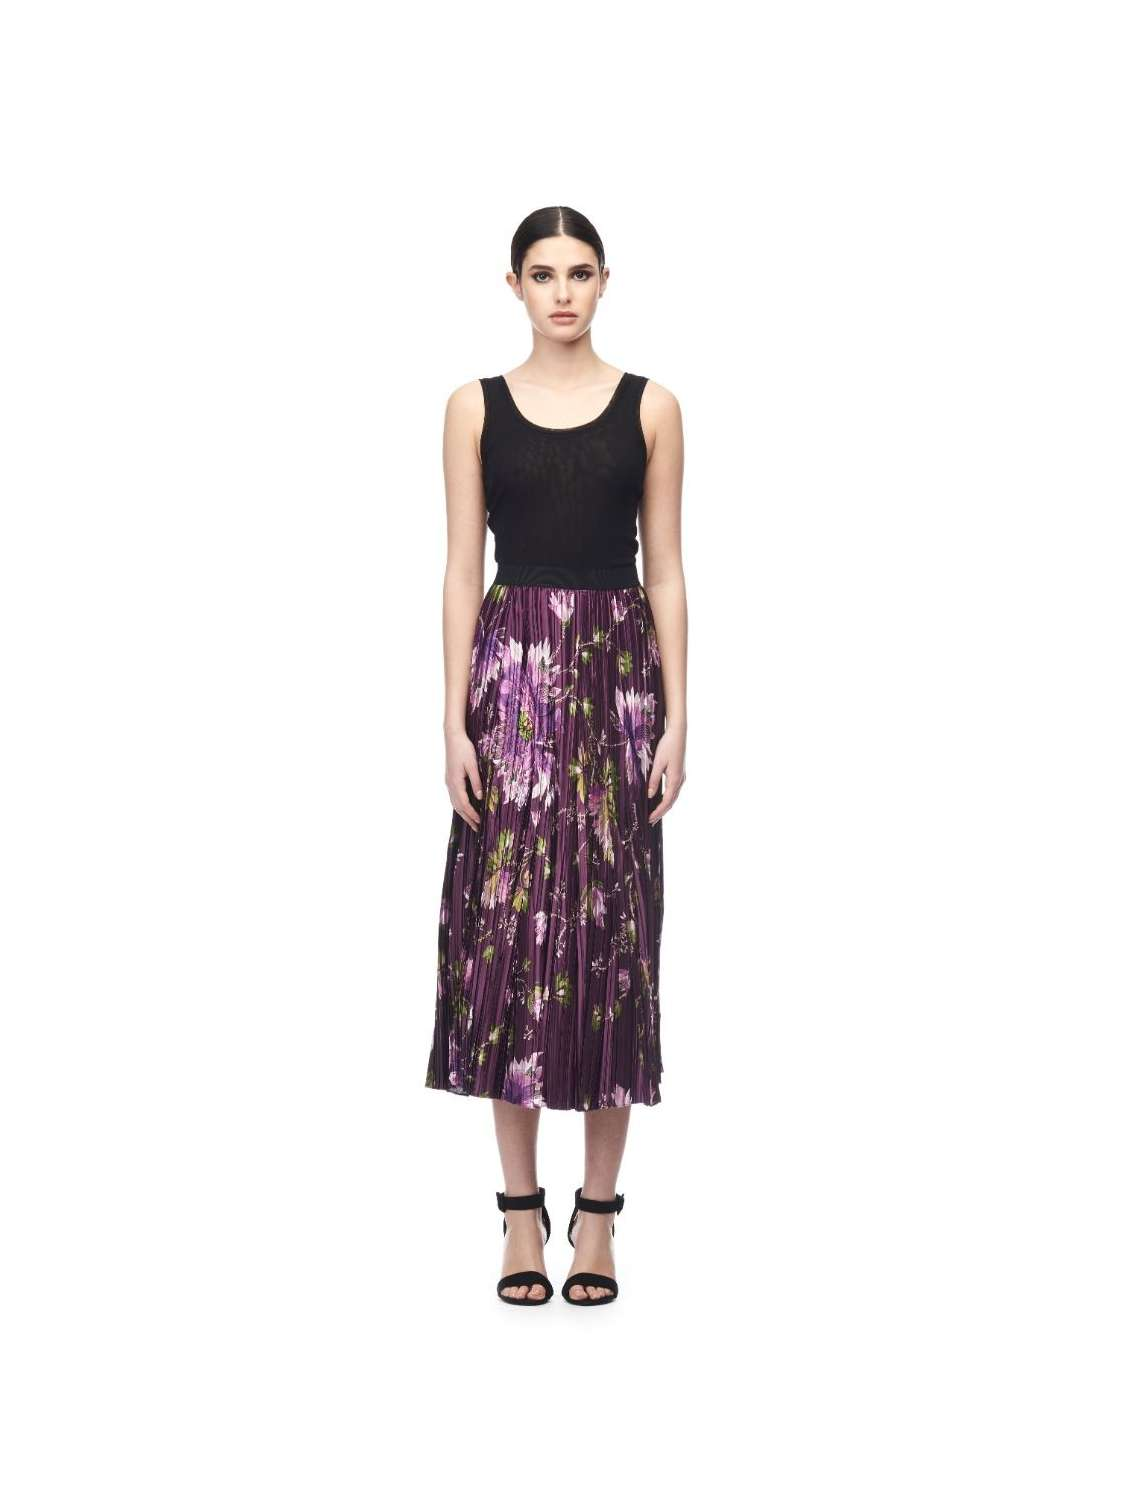 Satin midi lenght skirt